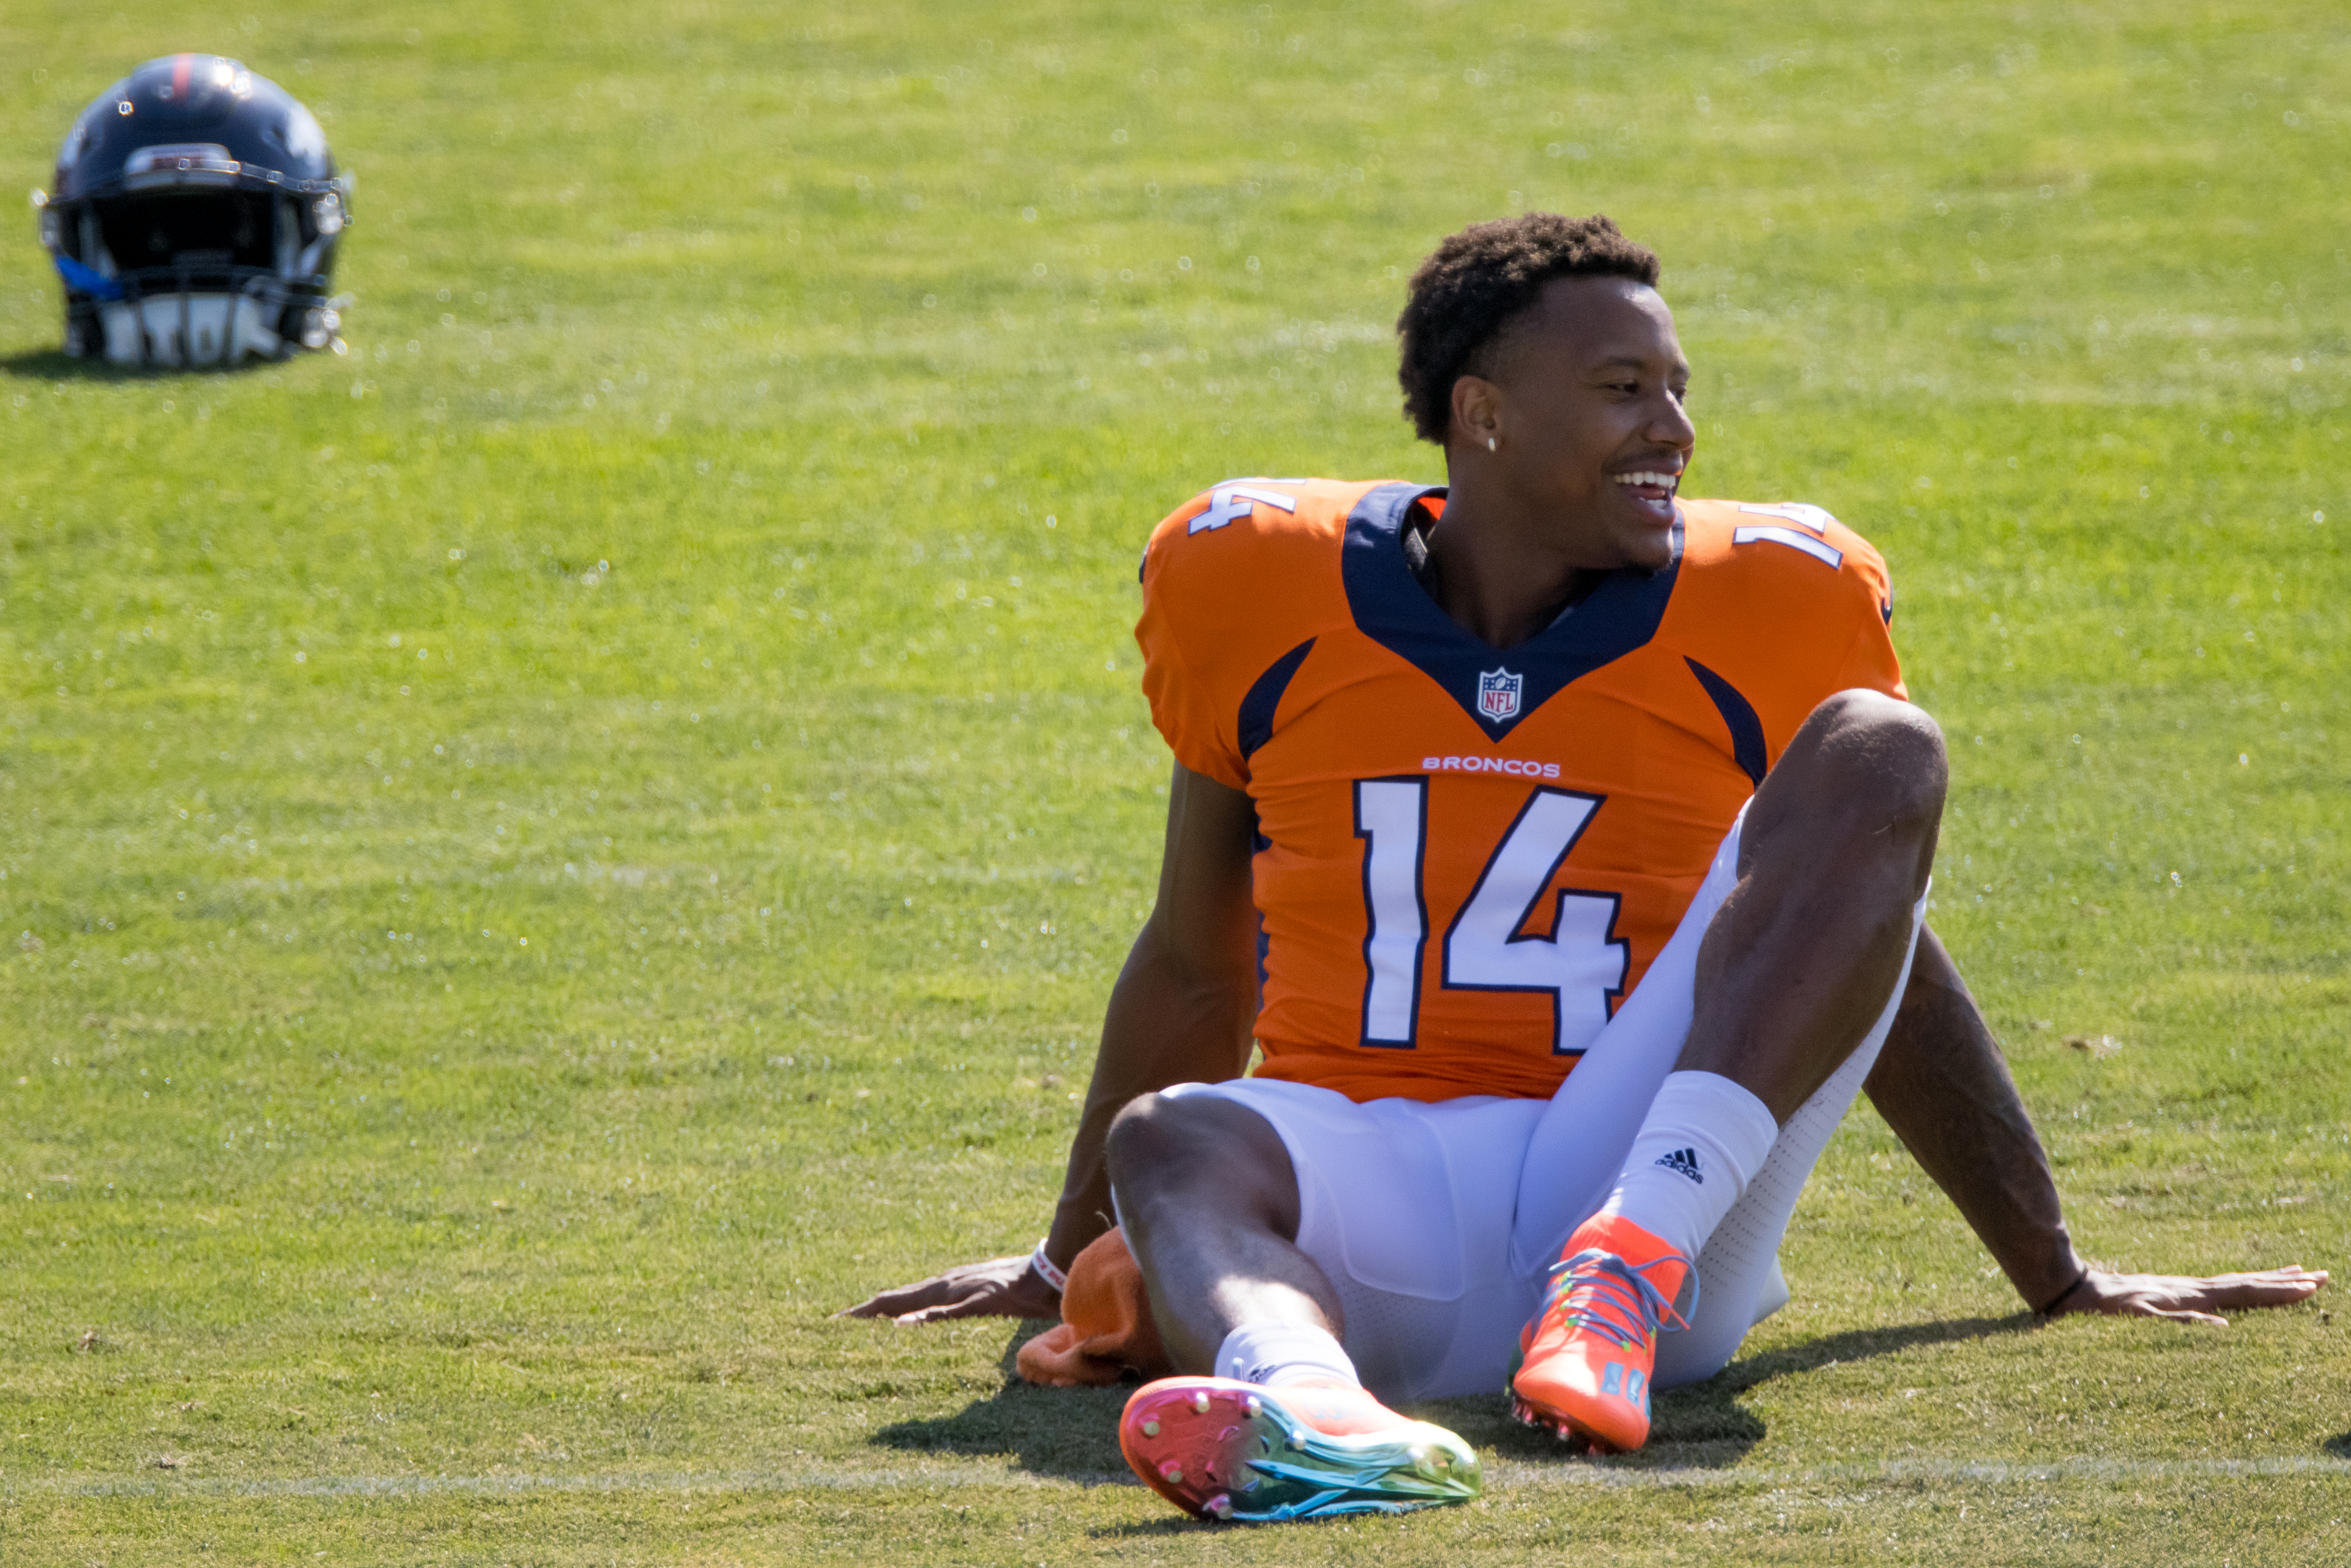 Wide receiver Courtland Sutton #14 of the Denver Broncos smiles while stretching during a training session at UCHealth Training Center on August 17, 2020 in Englewood, Colorado.